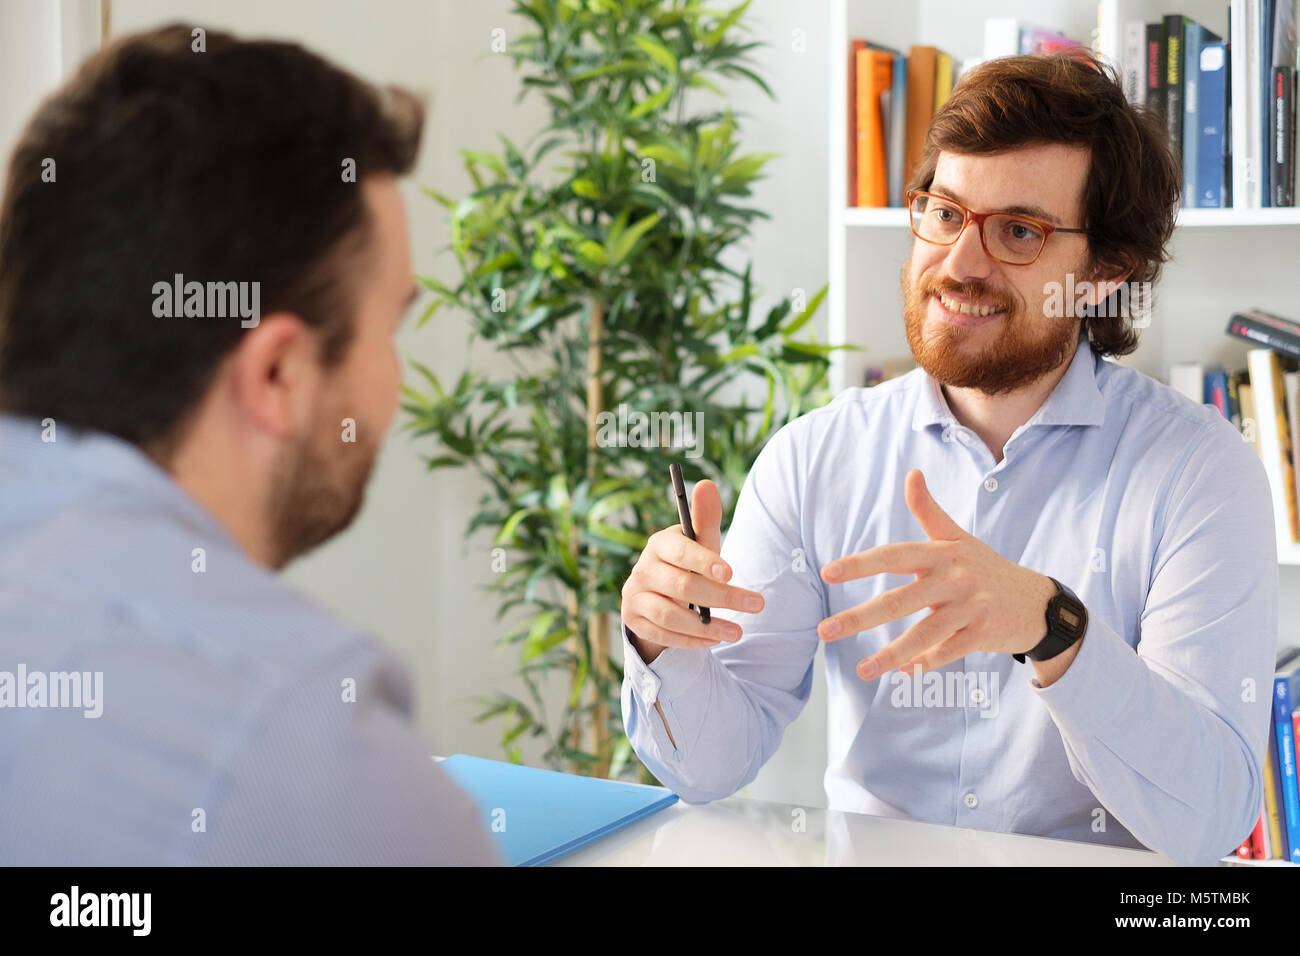 Male businessman interviews potential employee - Stock Image